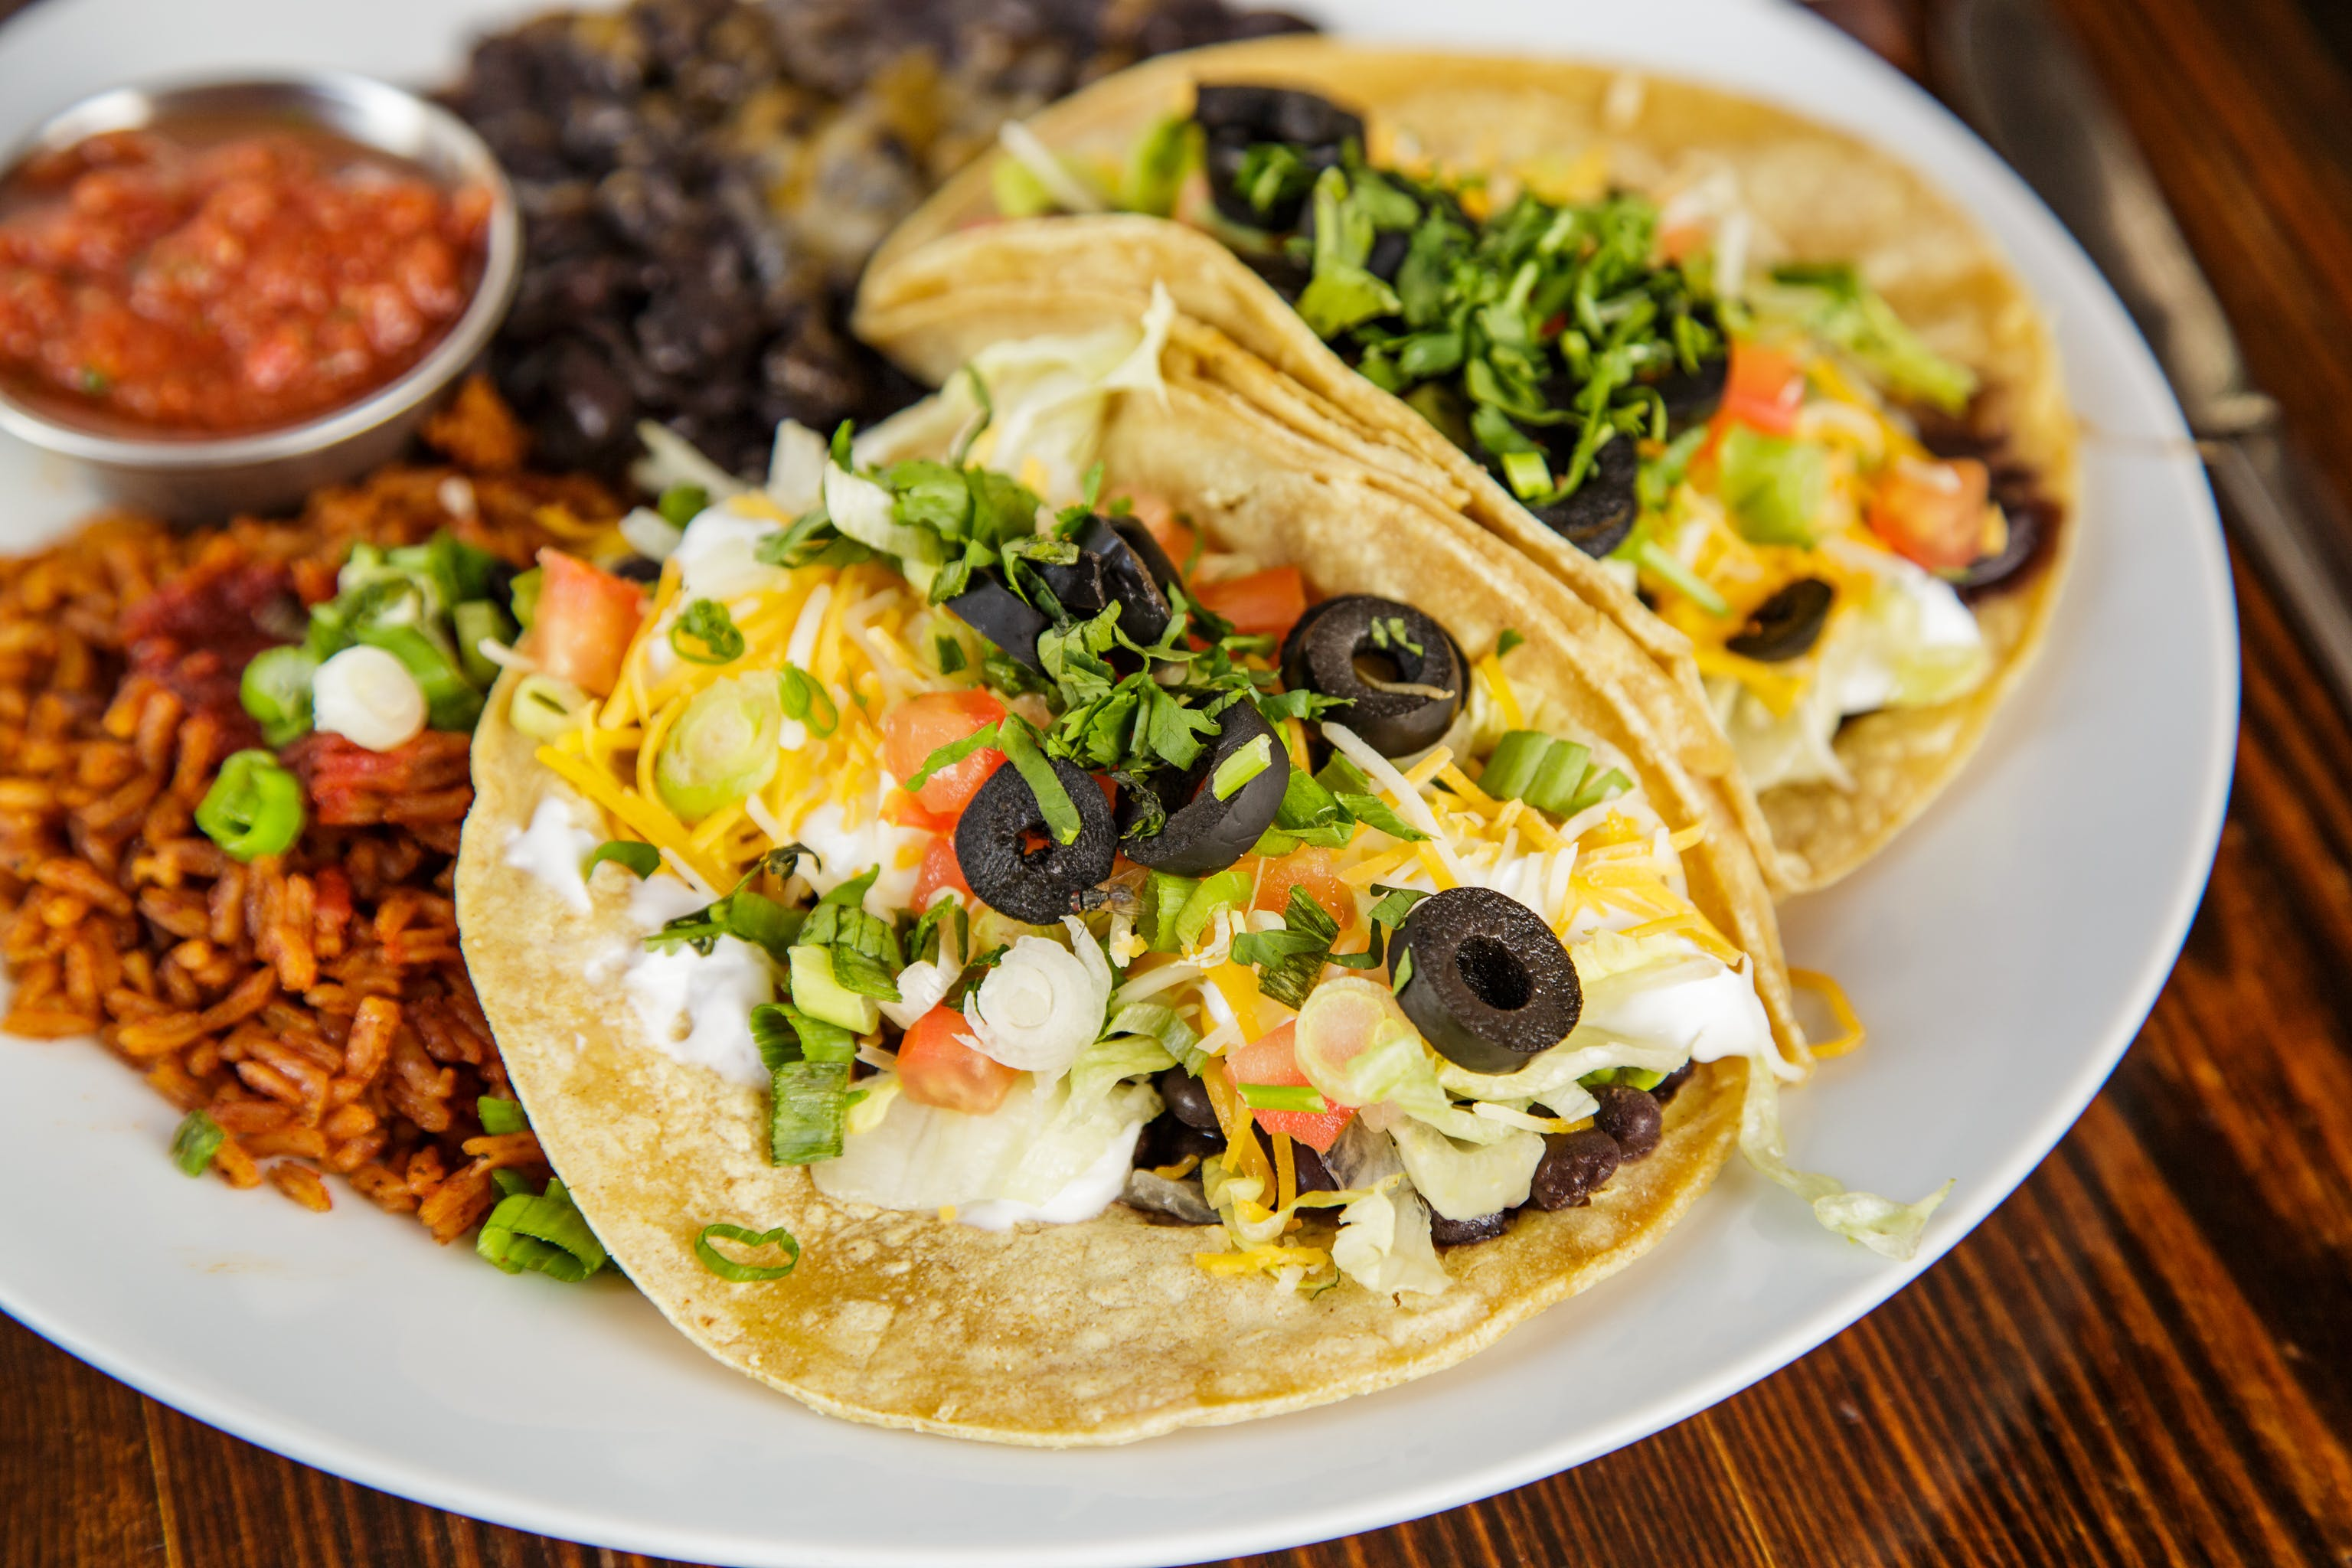 Pasqual's Taco Dinner from Pasqual's Cantina - Hilldale in Madison, WI